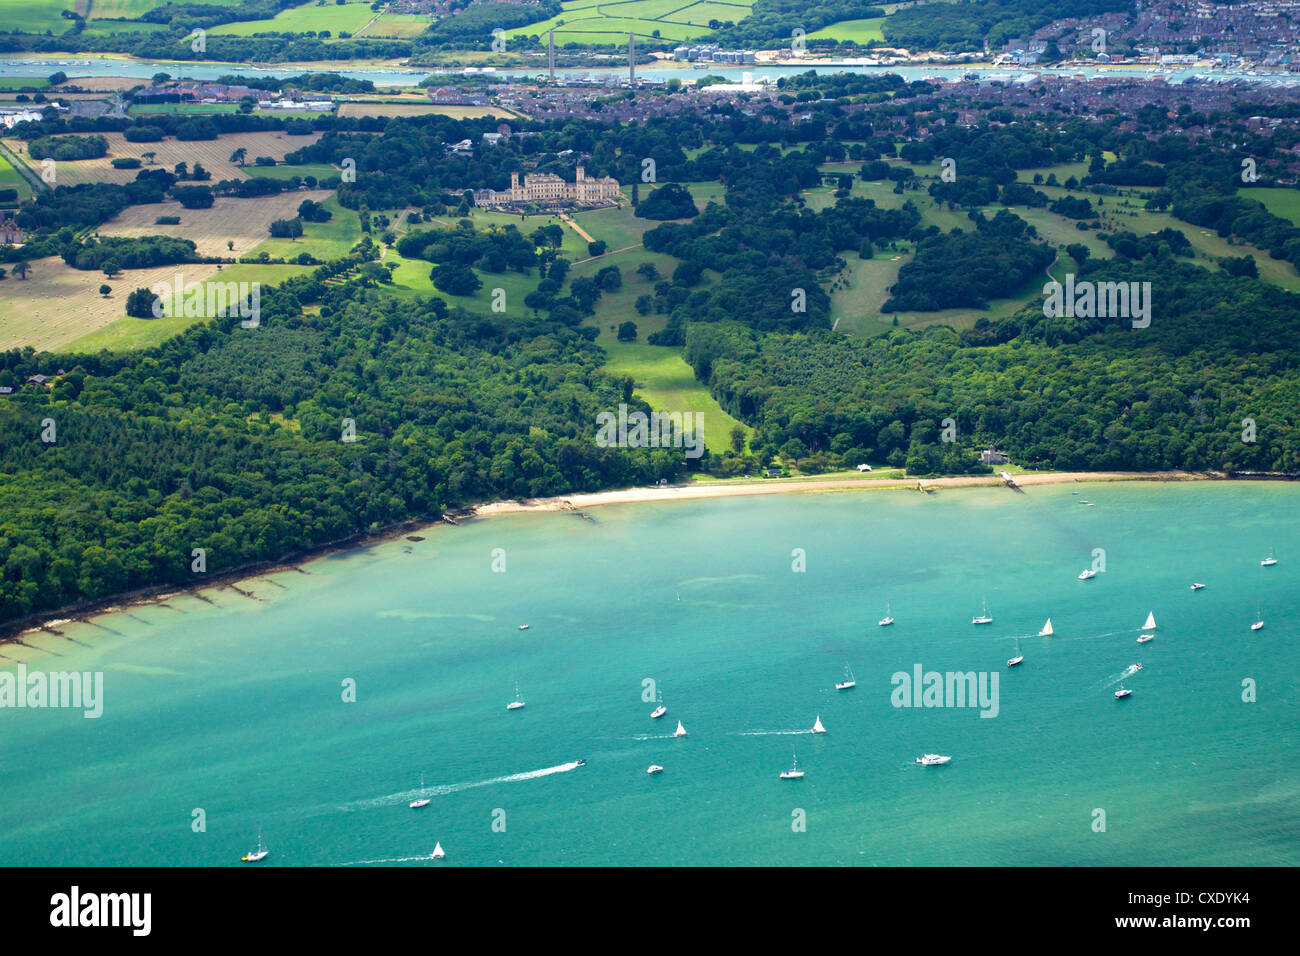 Aerial view of yachts racing in Cowes Week on the Solent, with Osborne House in background, Isle of Wight, England - Stock Image